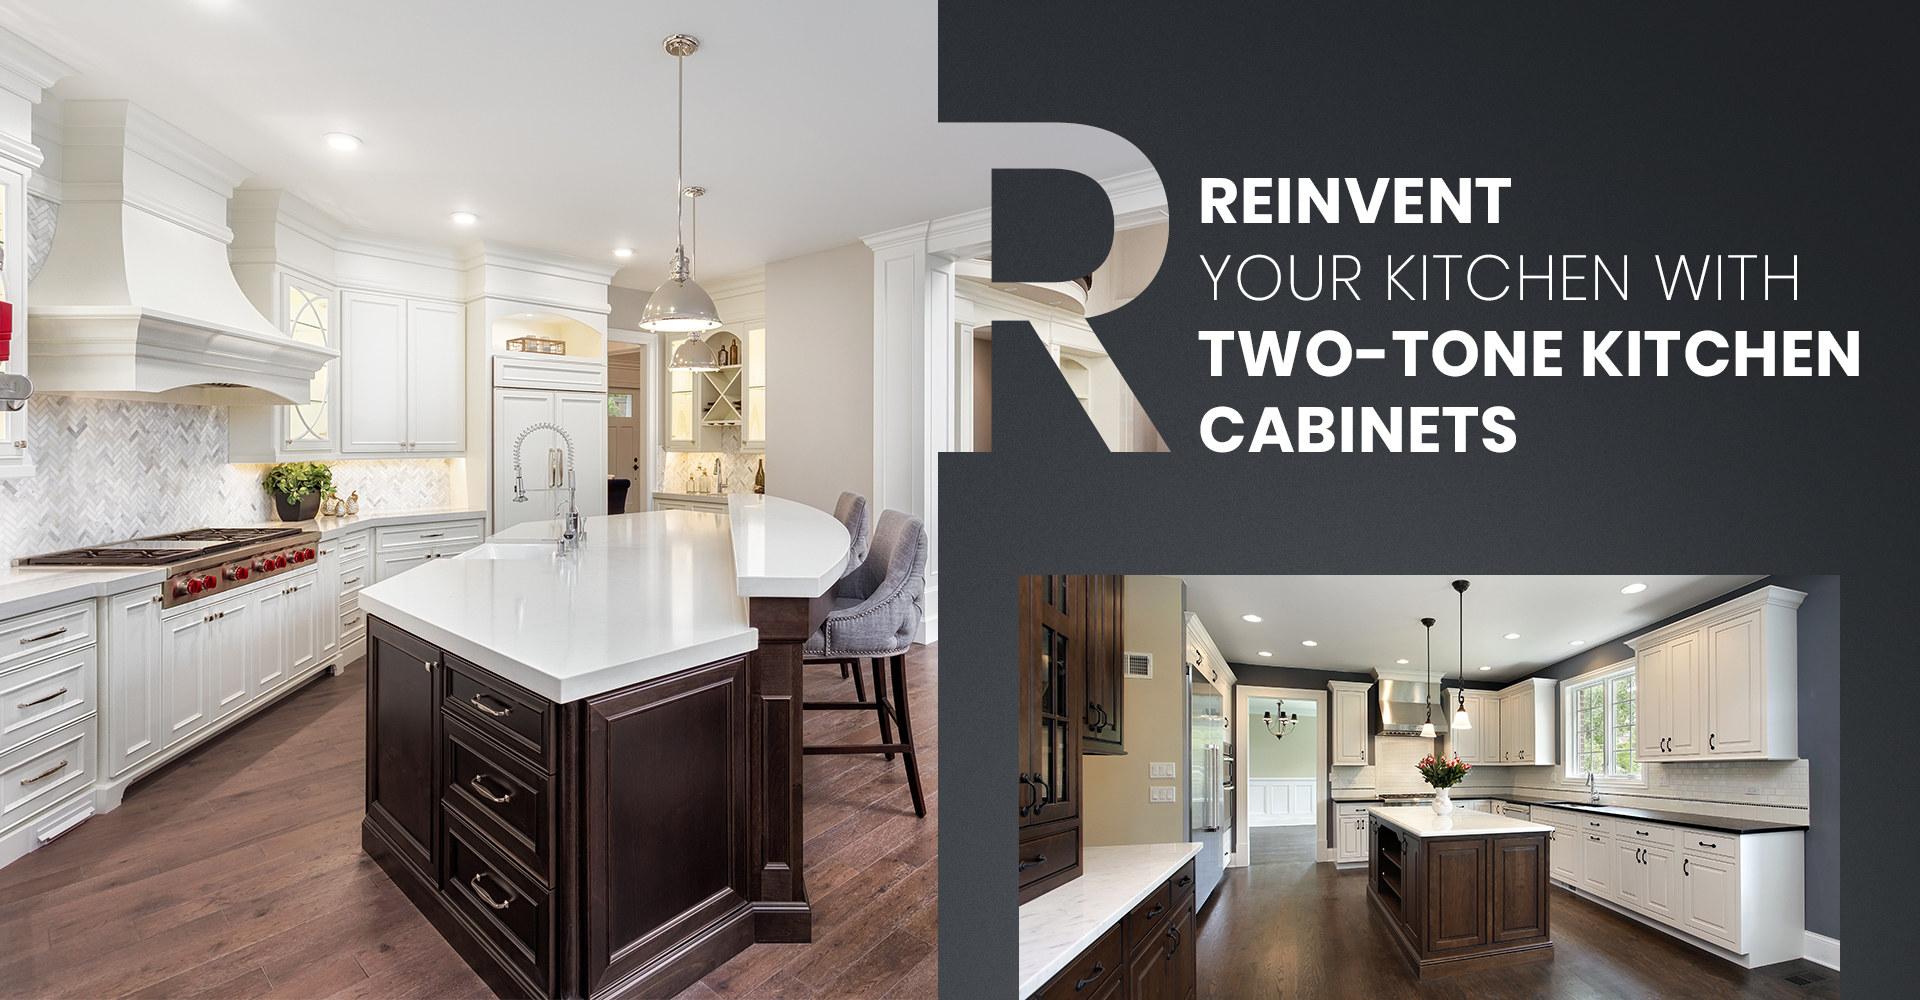 Reinvent Your Client's Kitchen with Two-tone Kitchen Cabinets